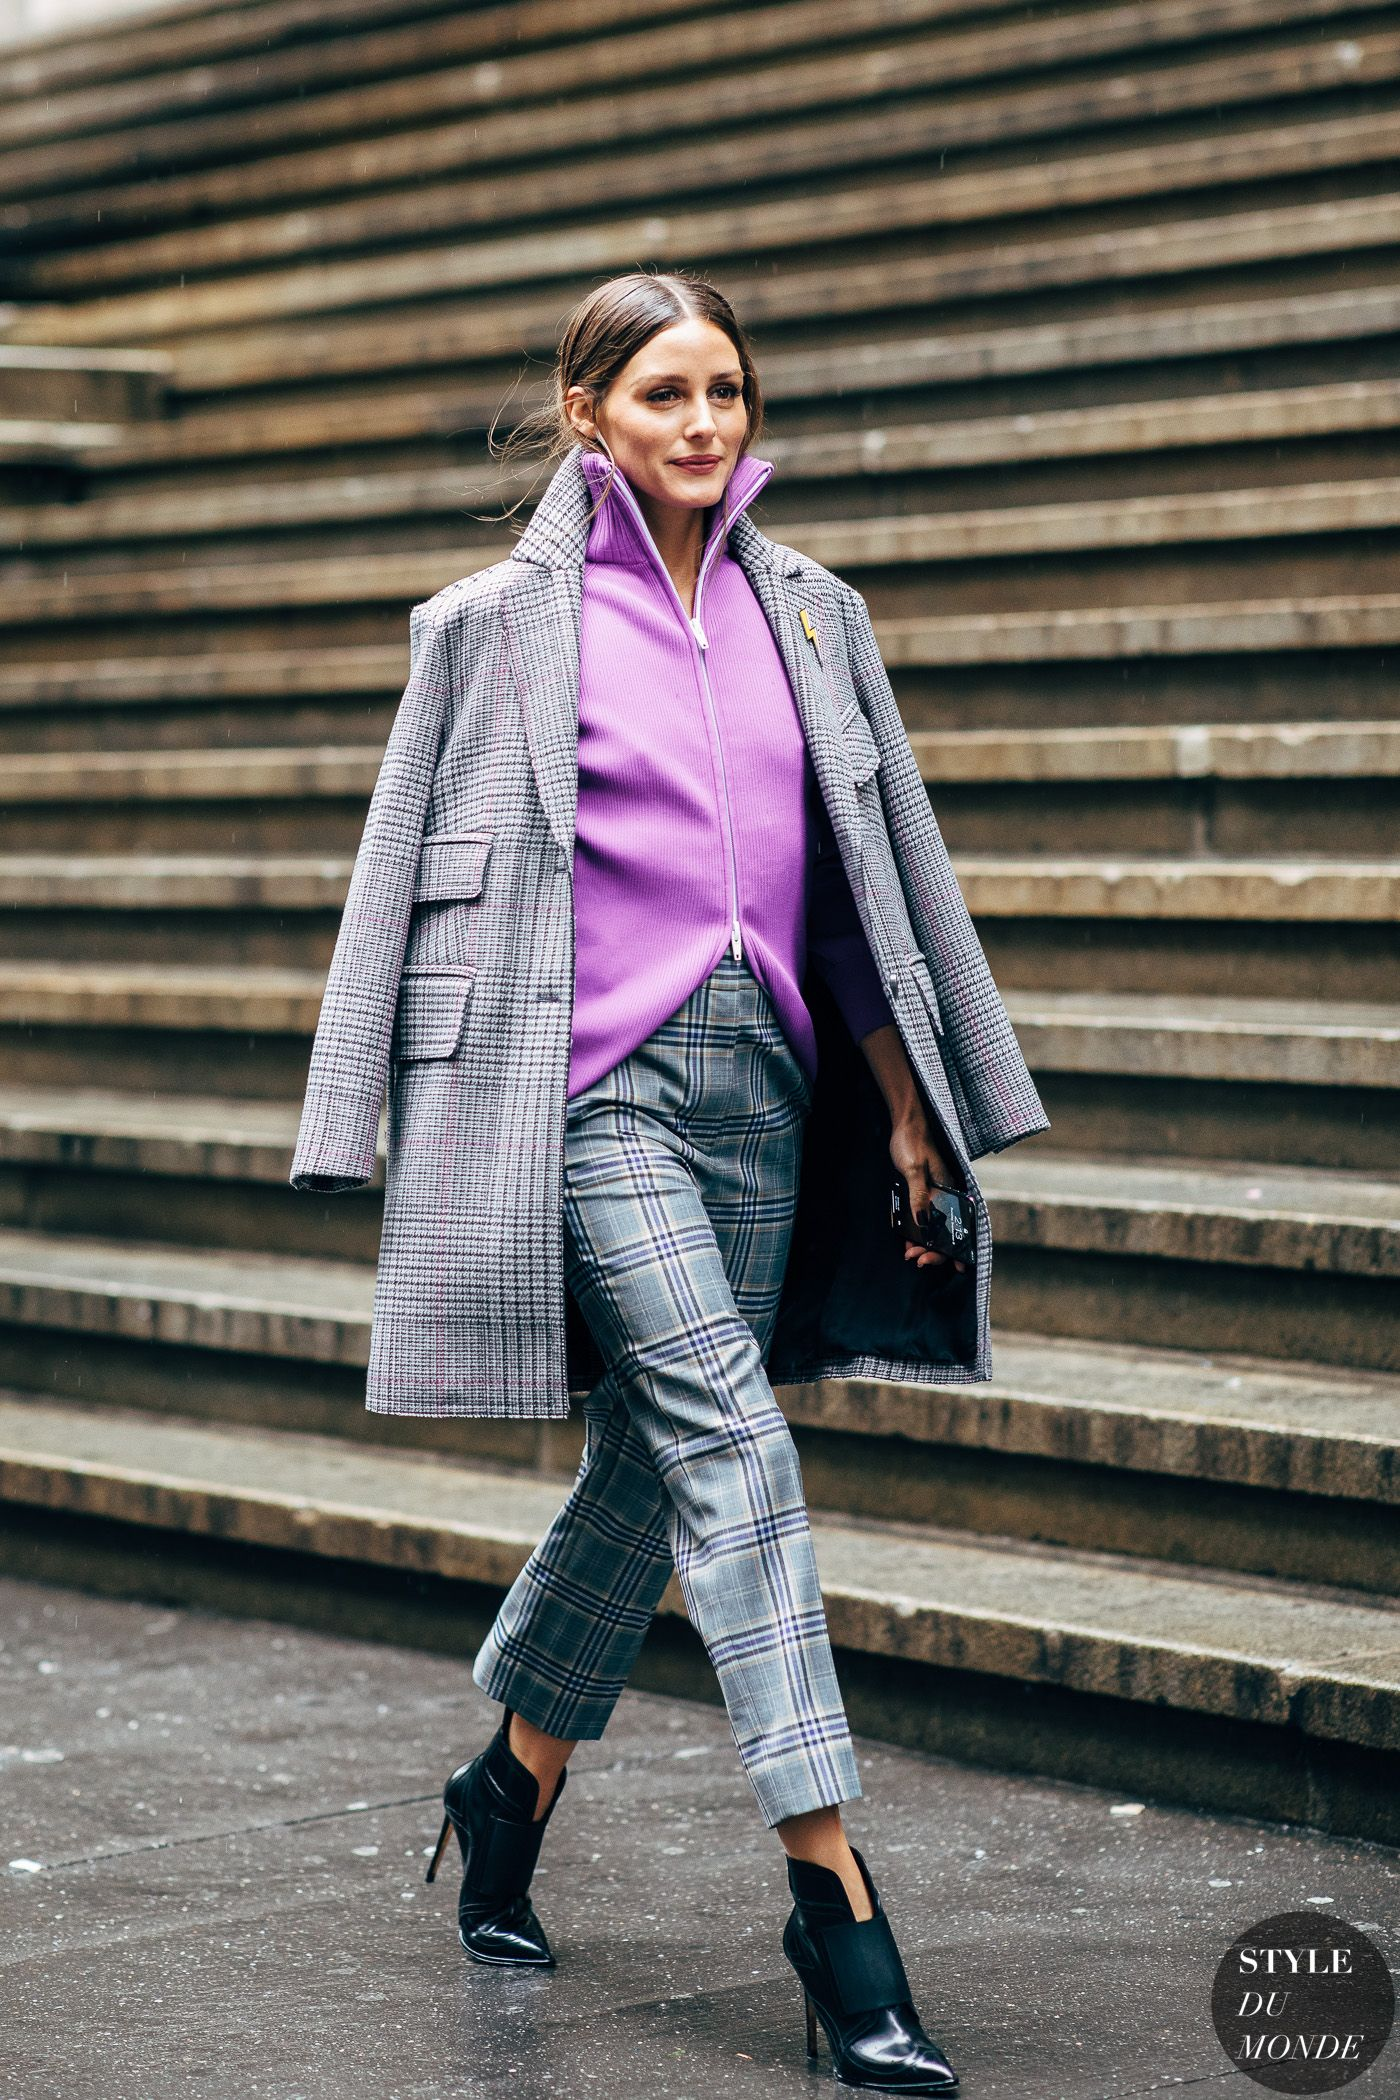 ce43904726 Olivia Palermo by STYLEDUMONDE Street Style Fashion  Photography20180909 48A9225